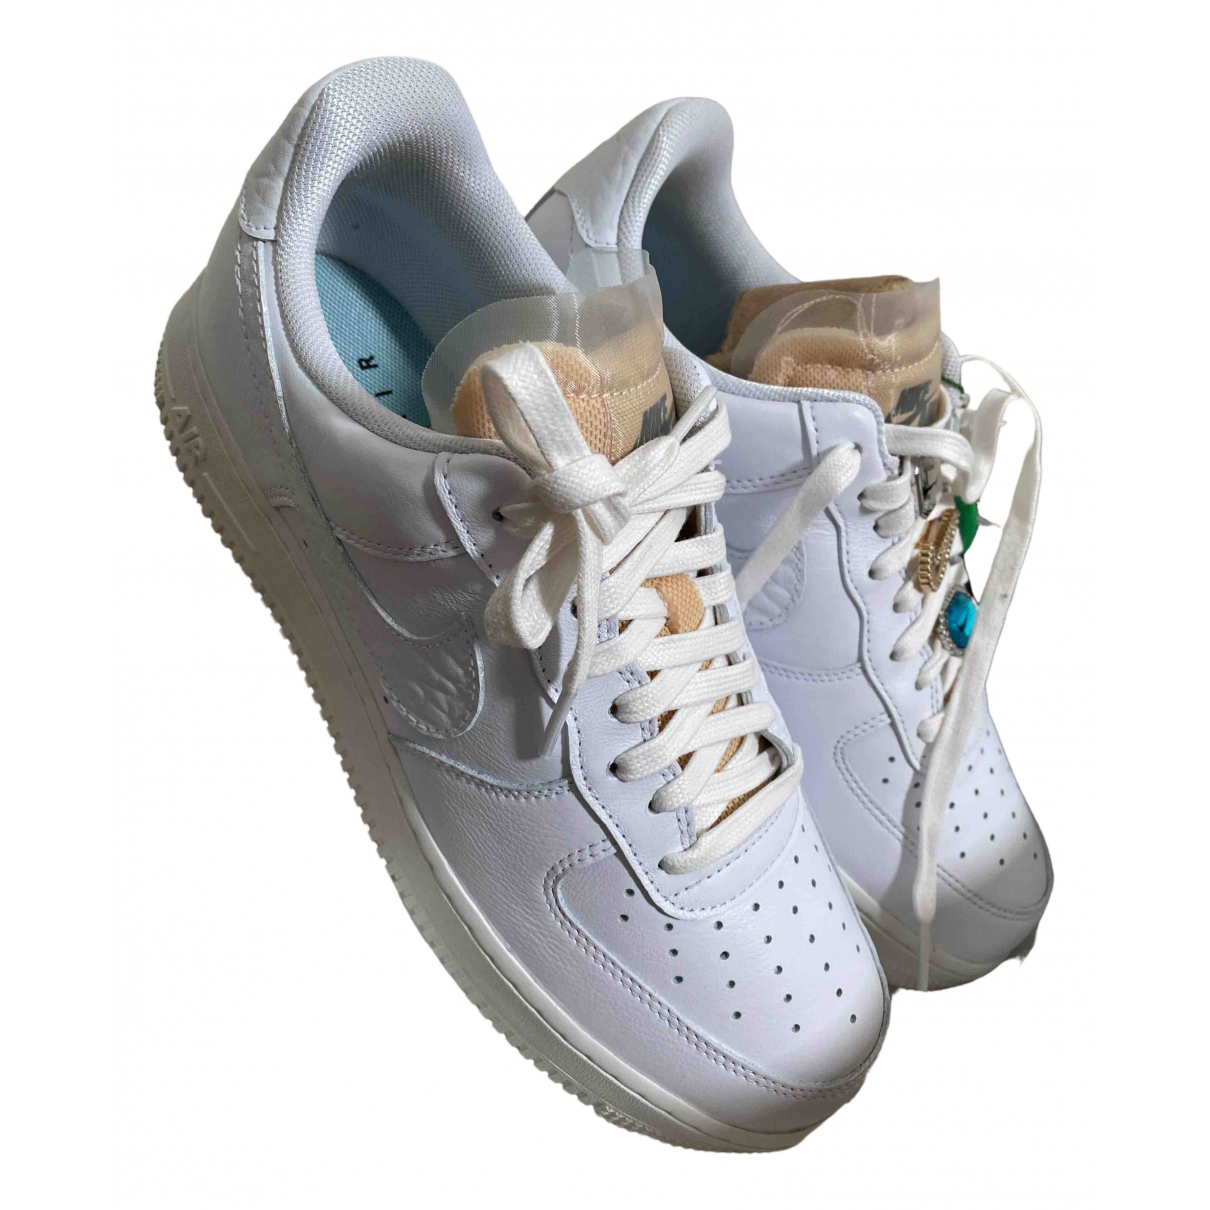 Nike Air Force 1 White Leather Trainers for Women 7.5 UK